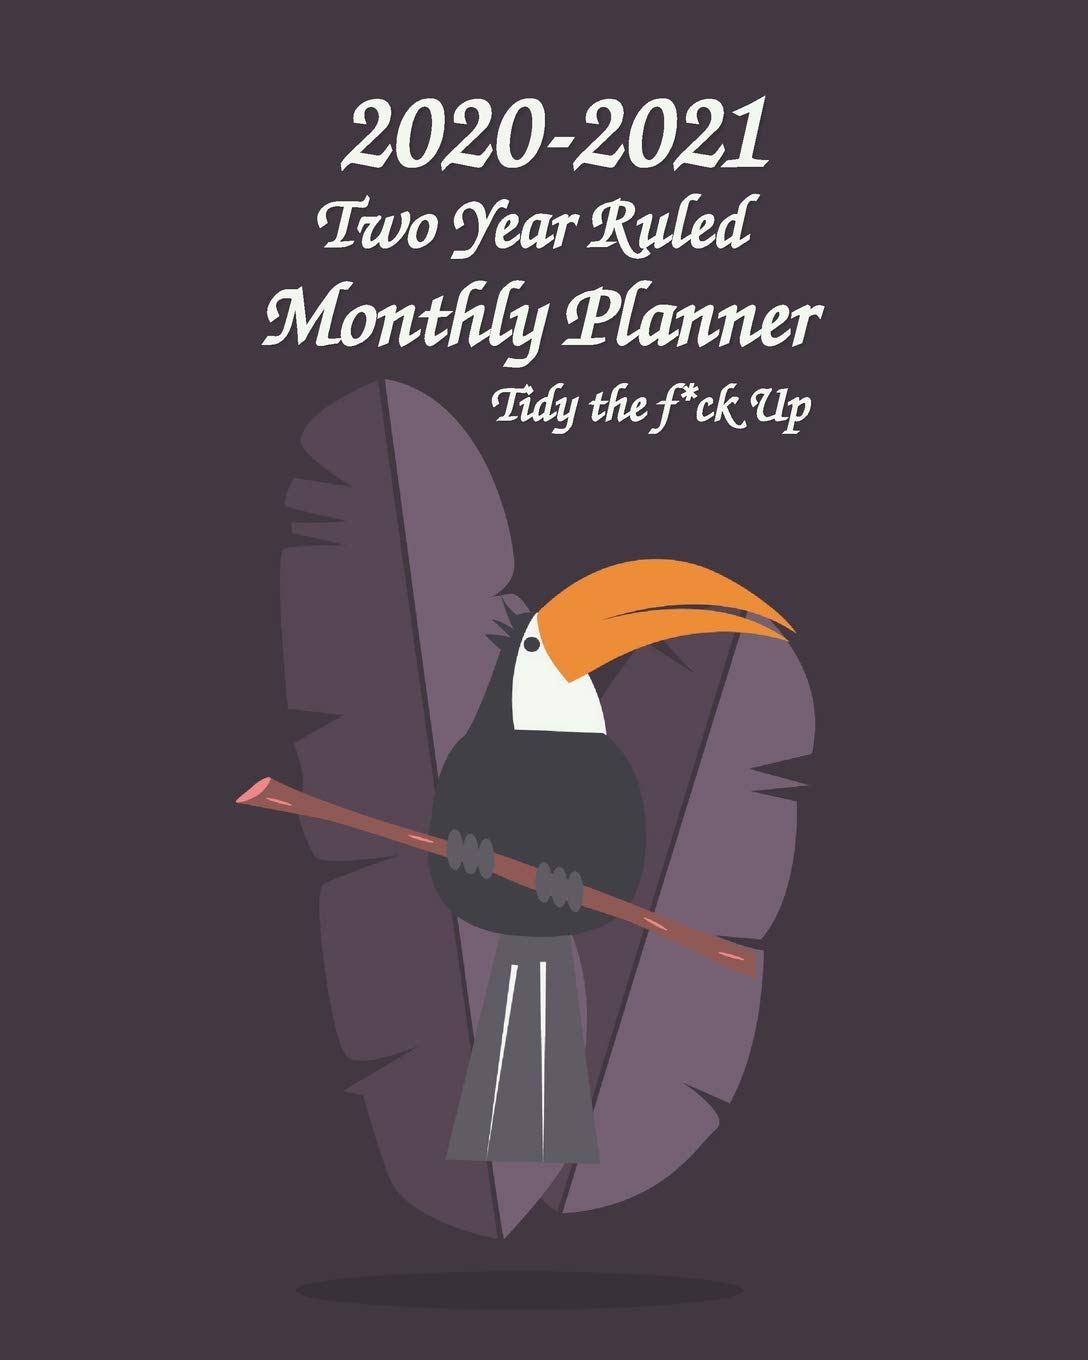 Amazon.com: 2020-2021 Two Year Ruled Monthly Planner Tidy ...